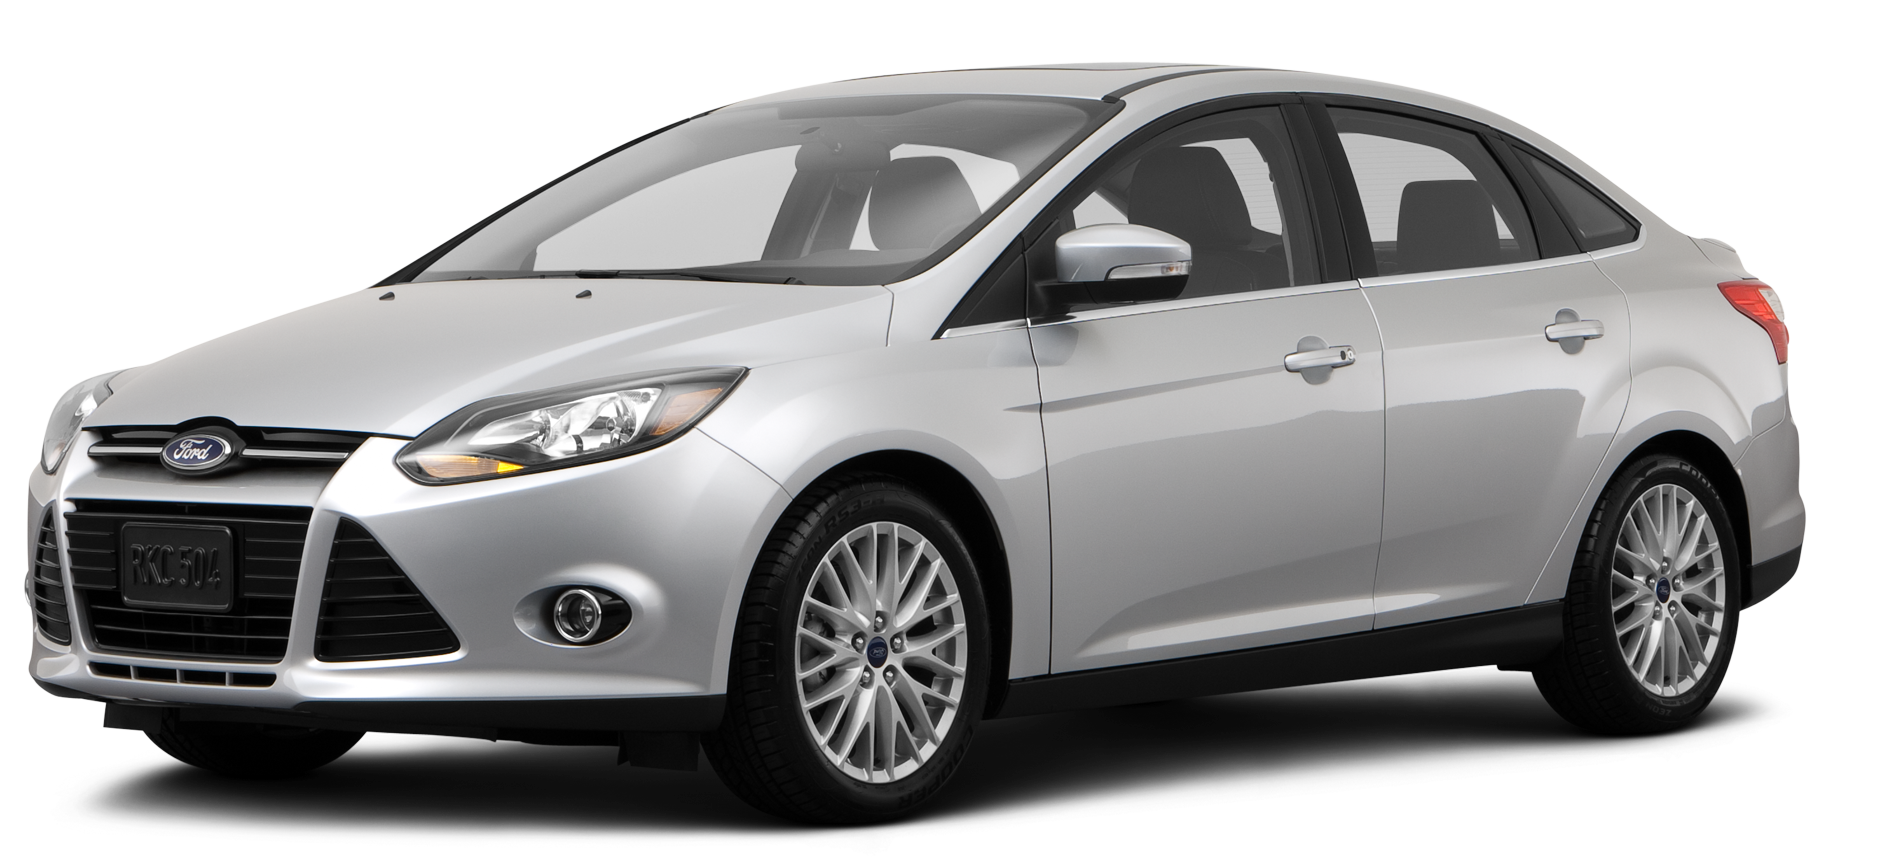 uploads ford ford PNG12236 3